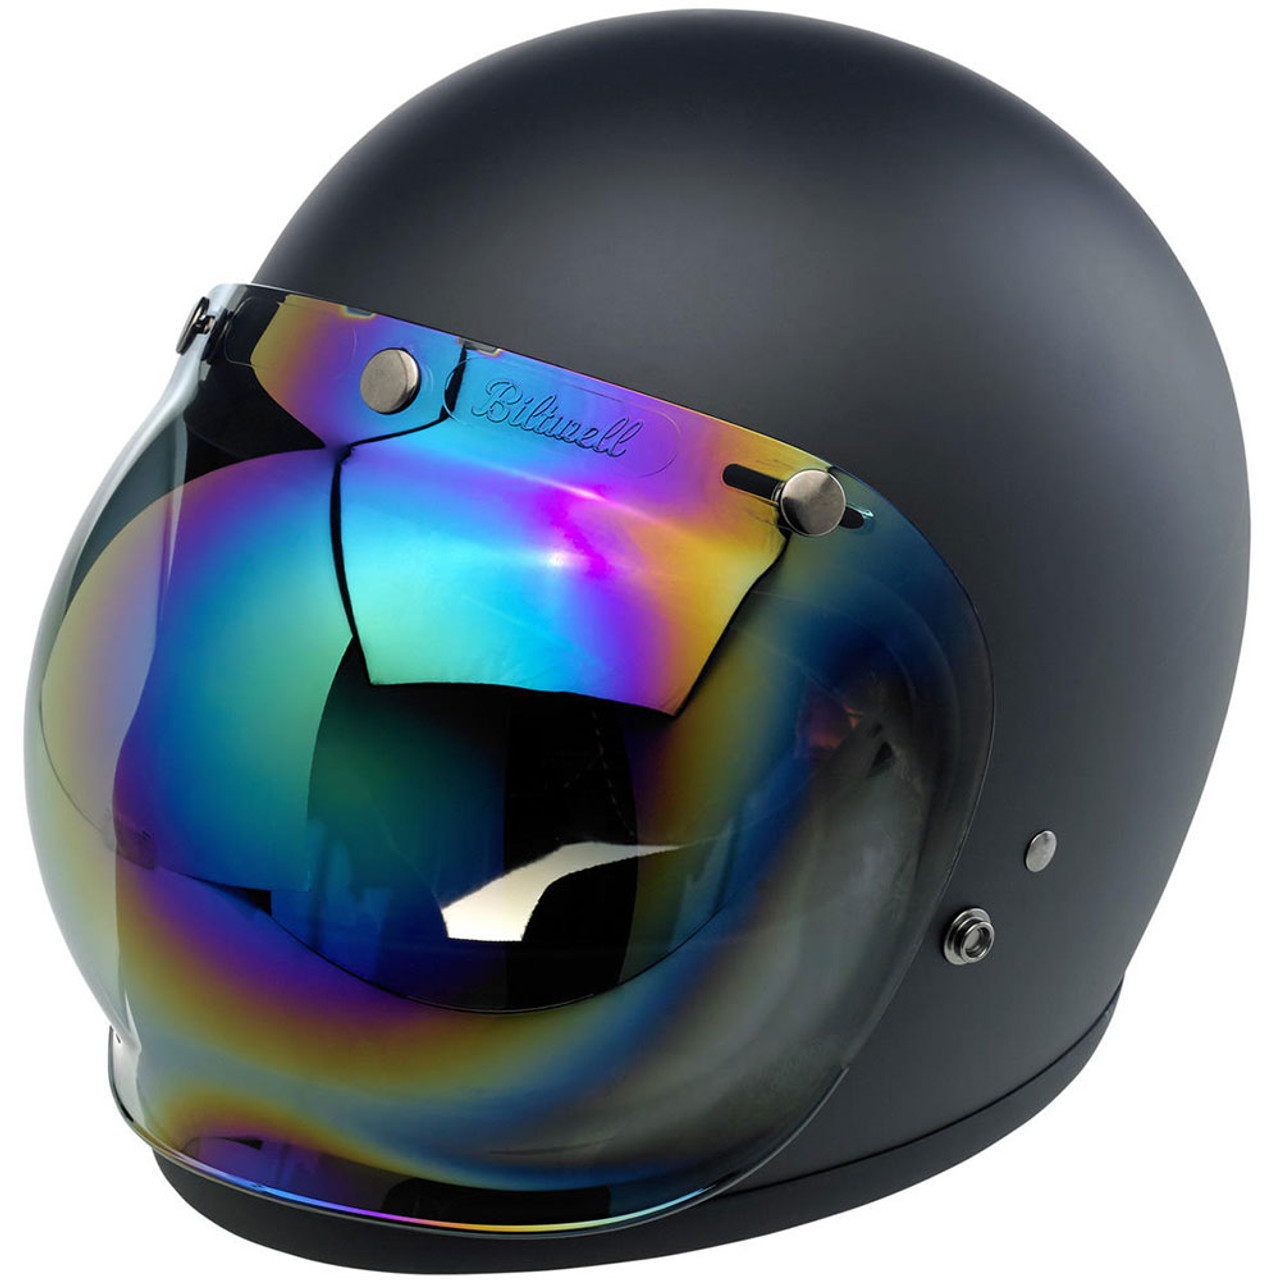 Biltwell Anti-Fog Bubble 3-Snap Bubble Face Shield Rainbow Mirror